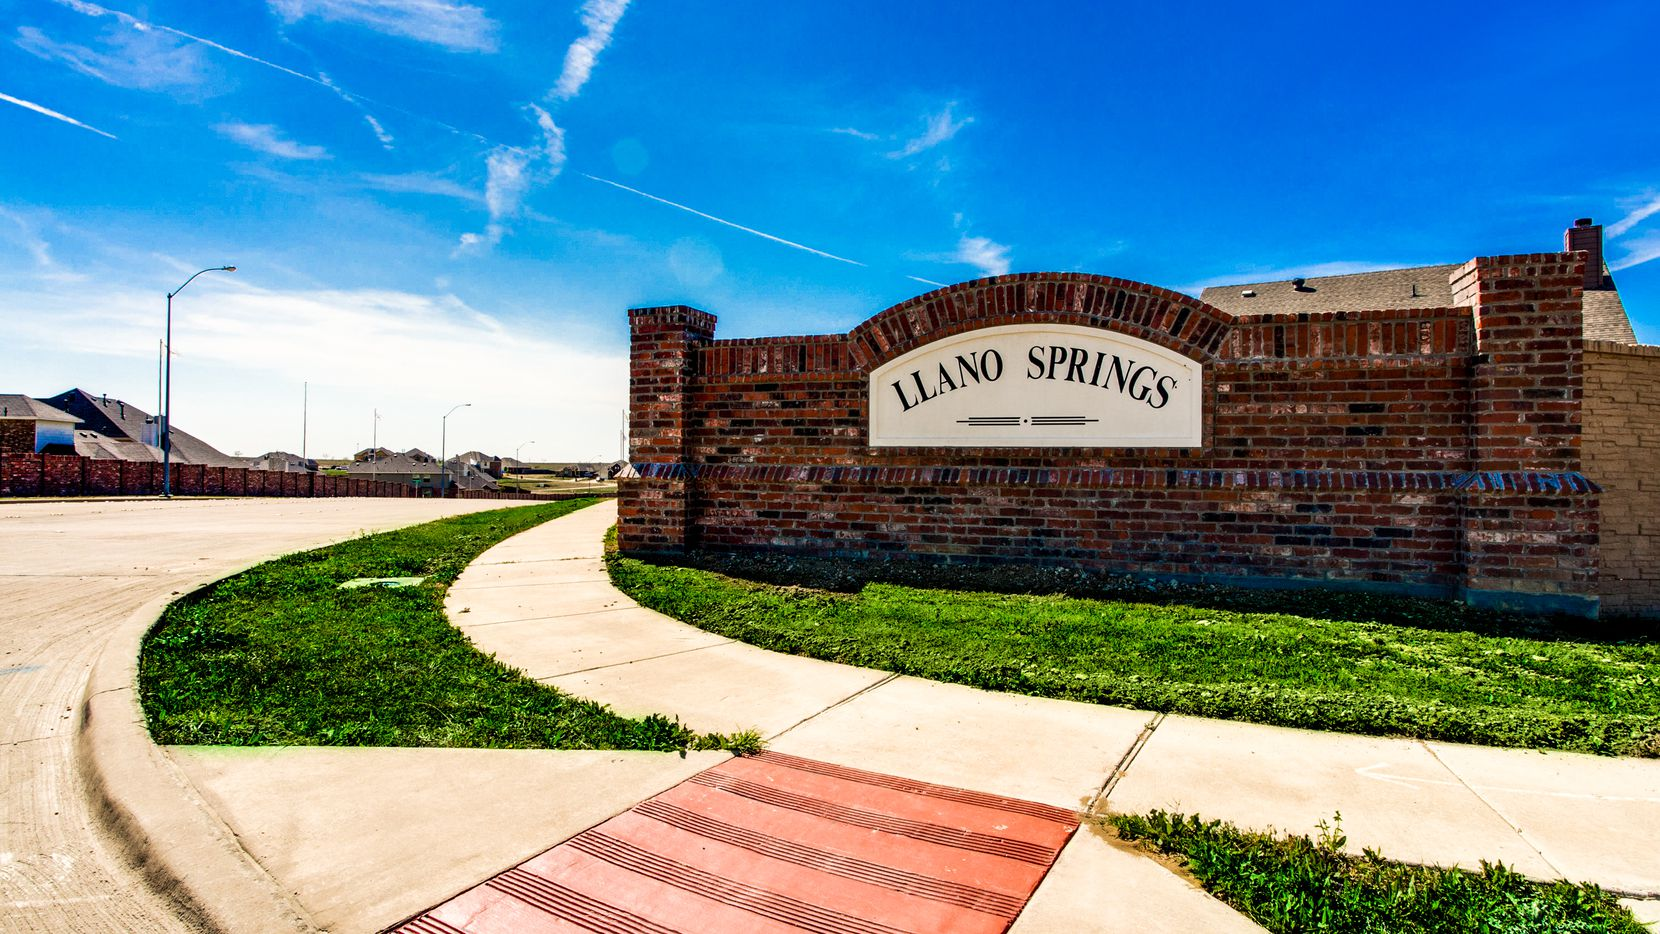 Wilbow Corp. bought more than 700 lots in the Llano Springs development southwest of Fort Worth.